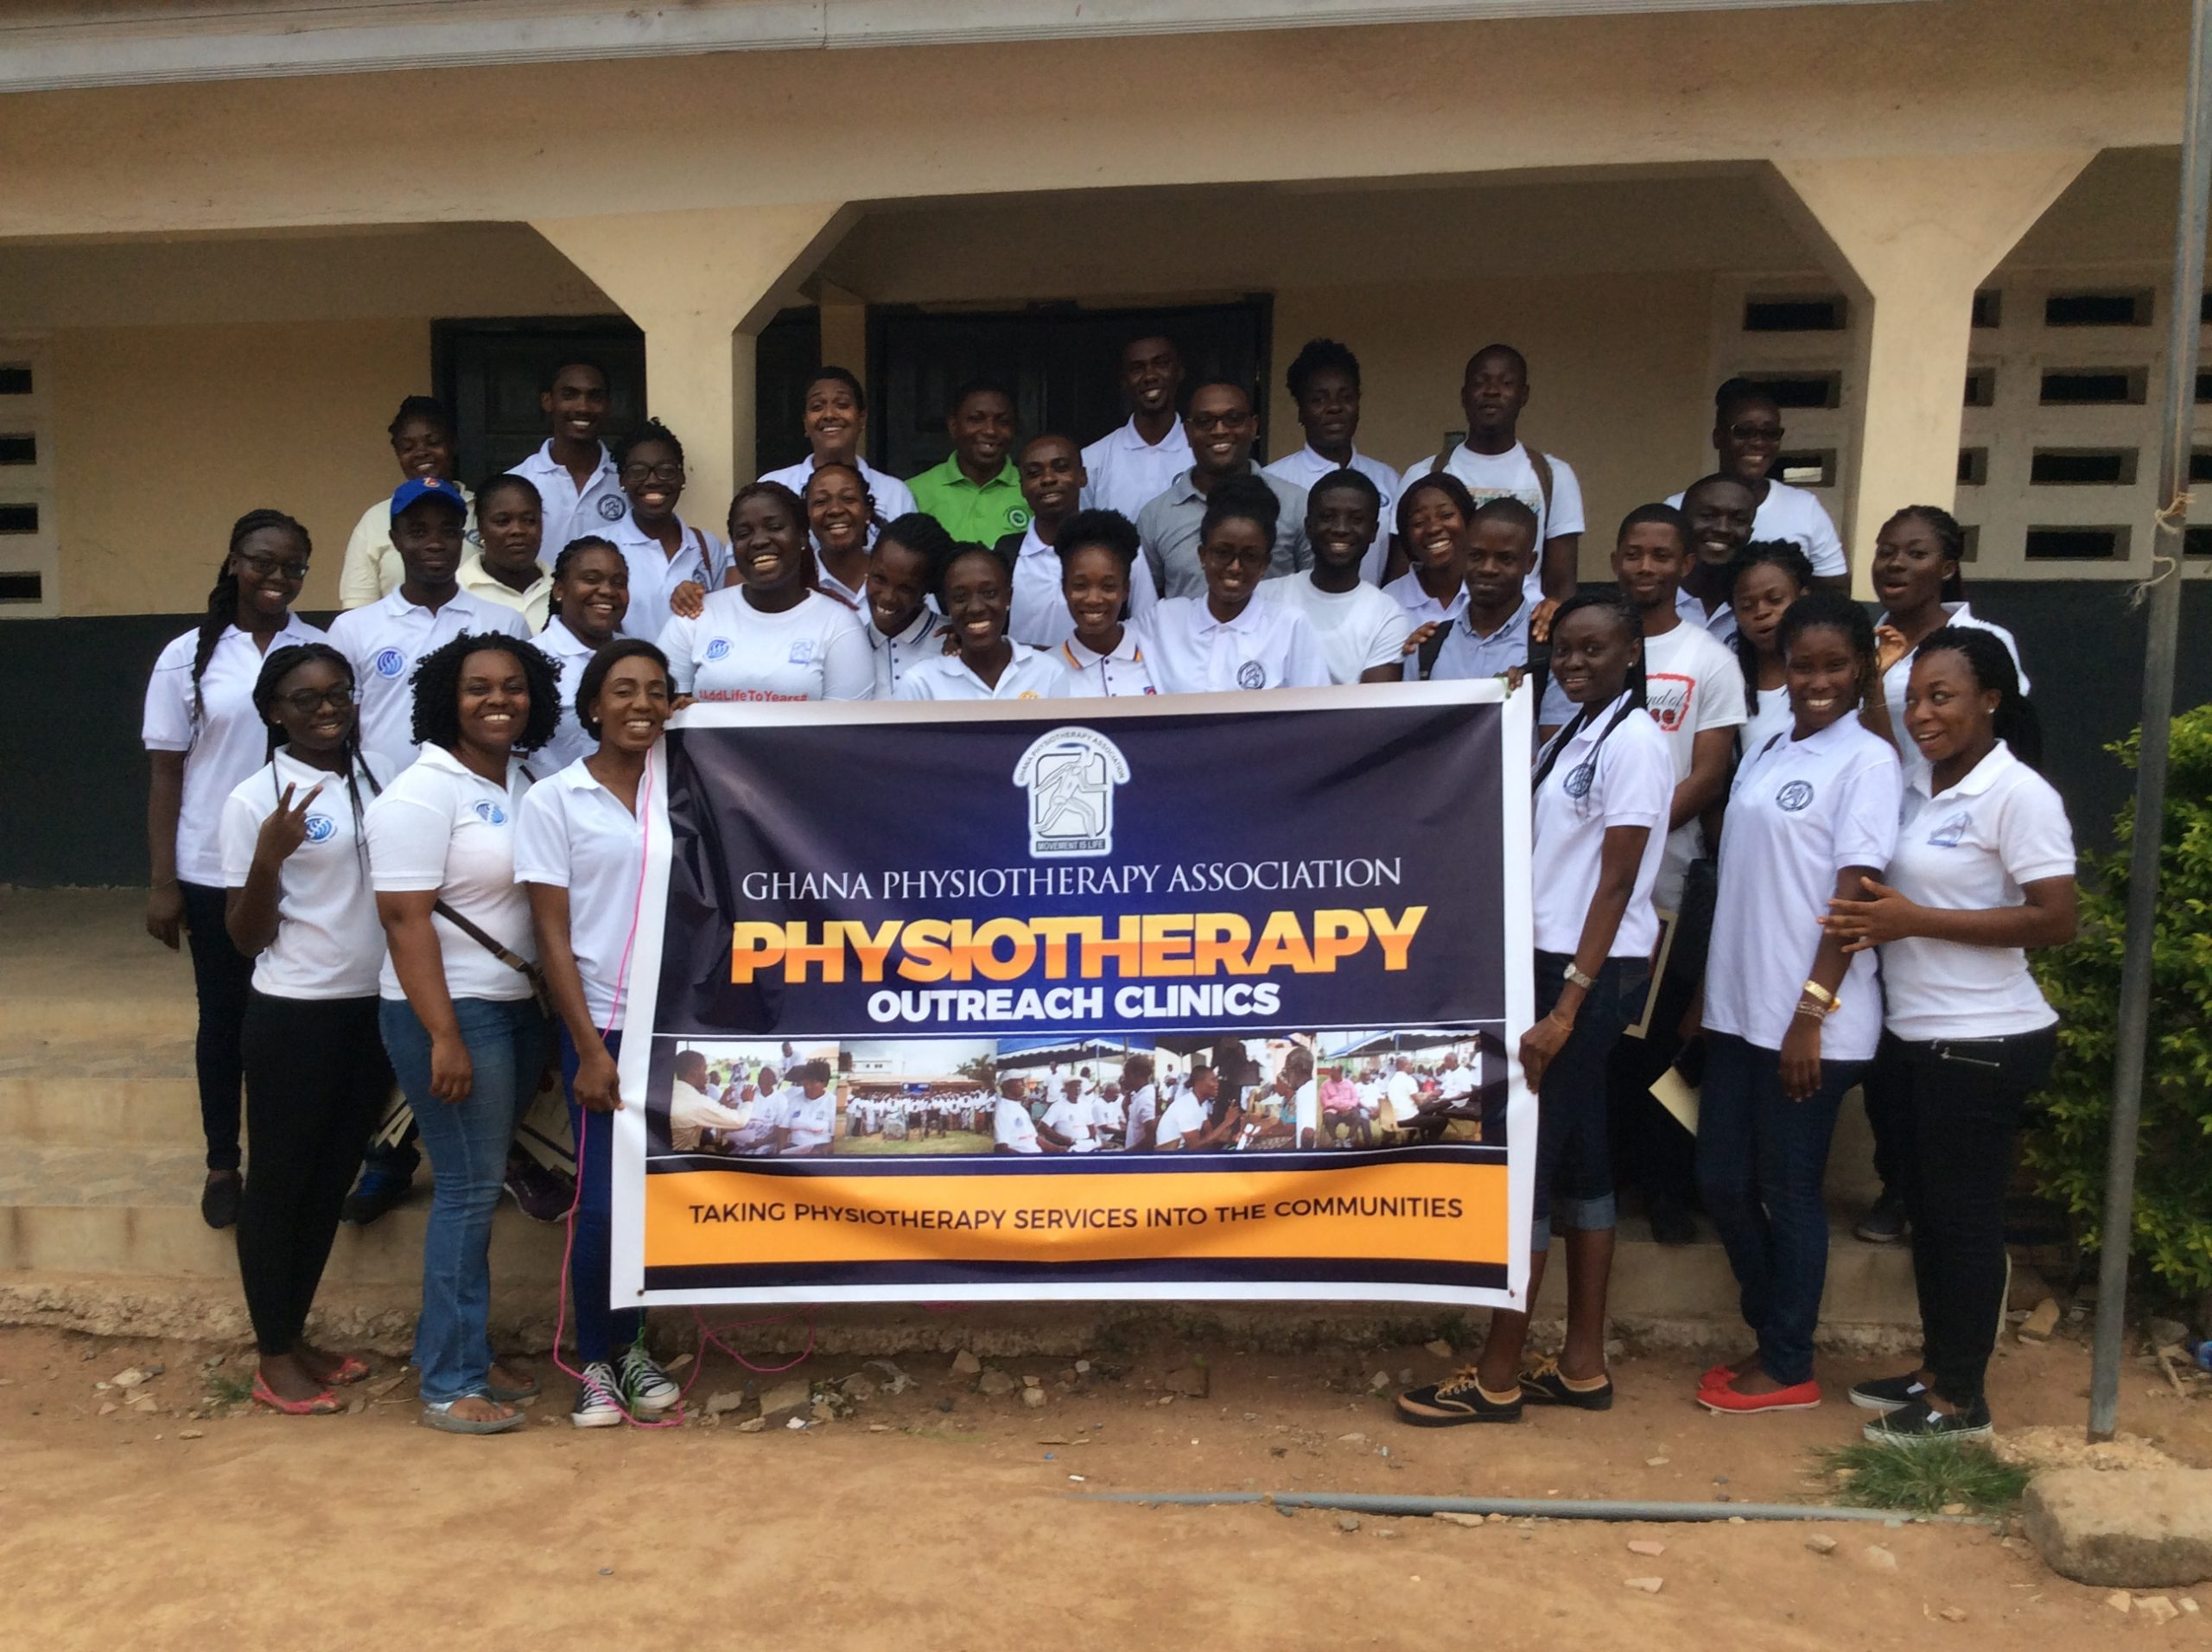 GHANA PHYSIOTHERAPY ASSOCIATION OUTREACH CLINIC HELD AT OTINIBI — 22nd July, 2017